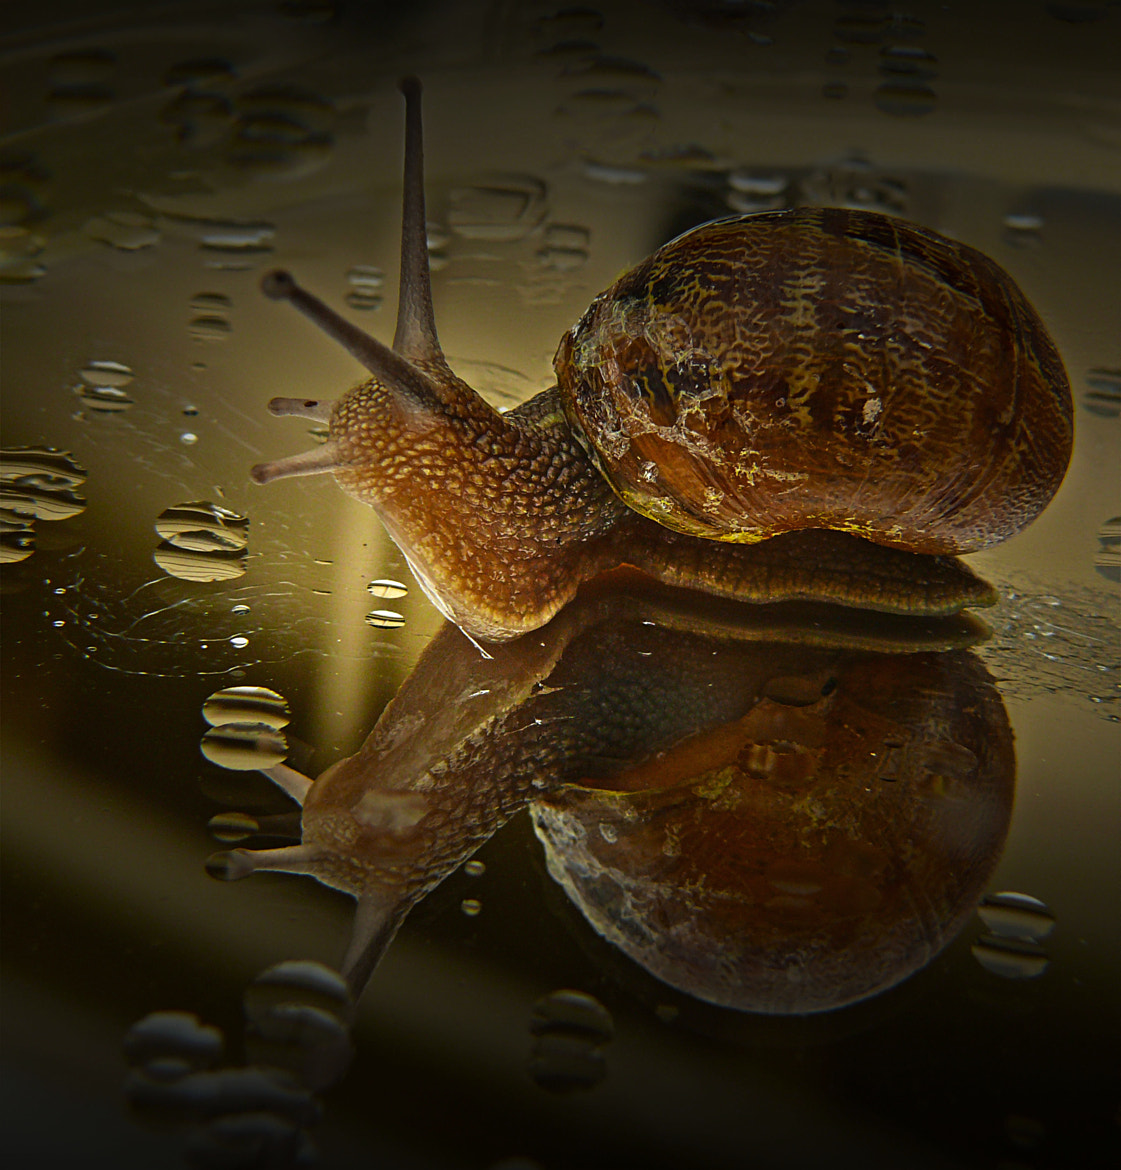 Photograph Snail by Josie Jackson on 500px